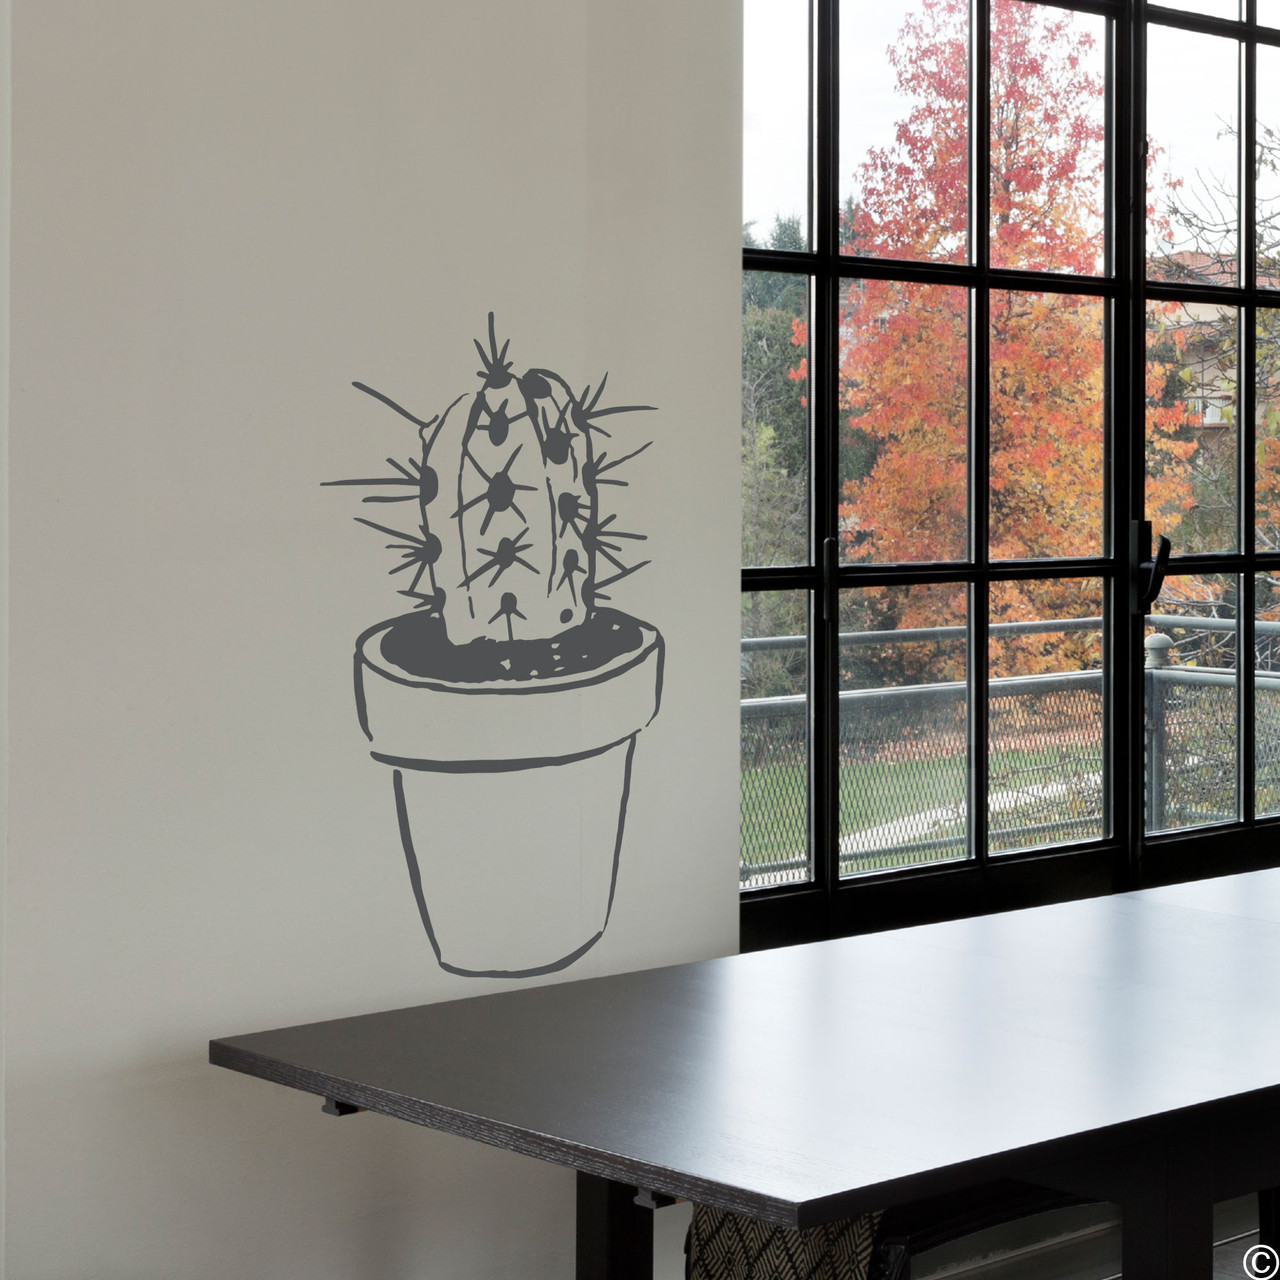 The hand drawn potted cactus wall decal in dark grey vinyl color.